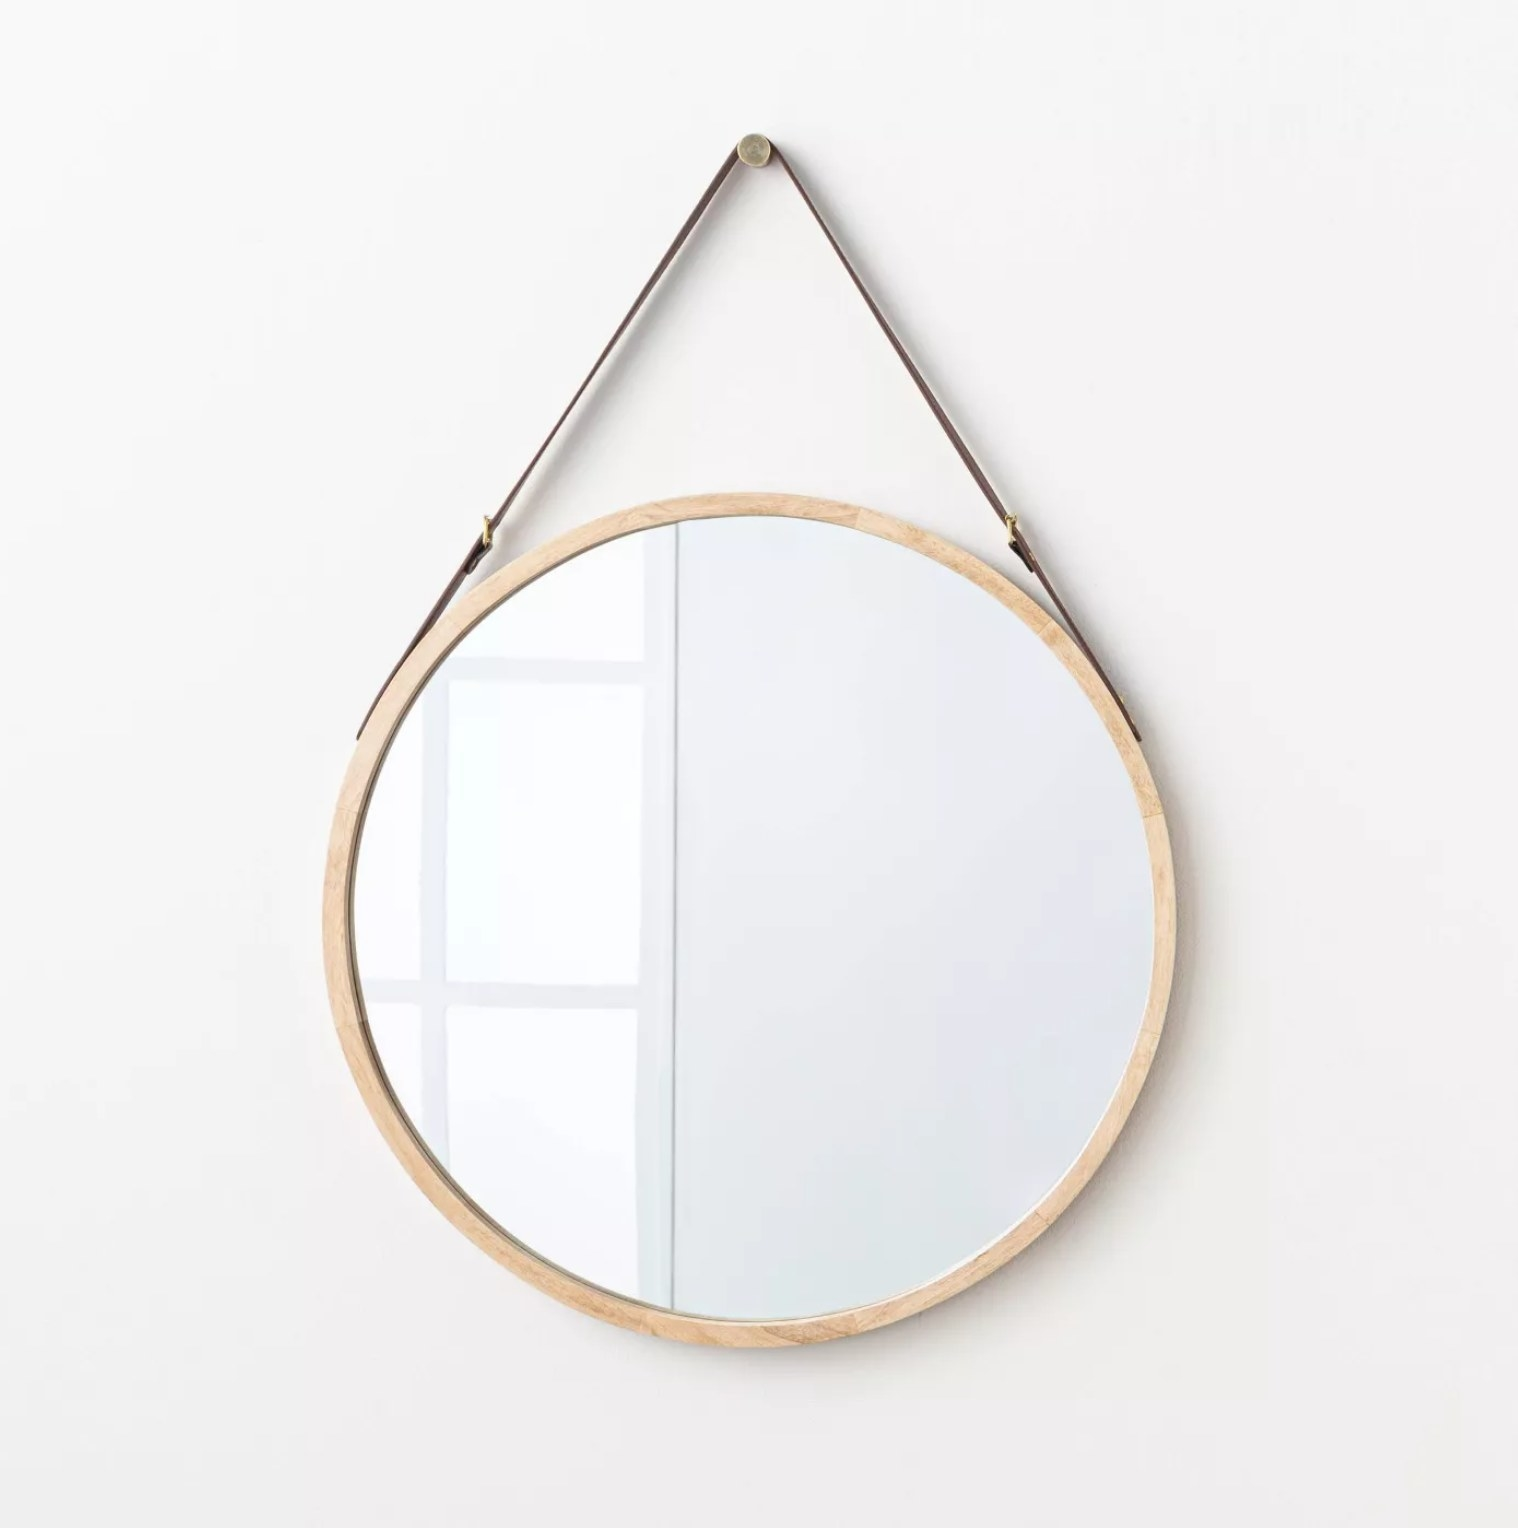 The mirror in natural finish